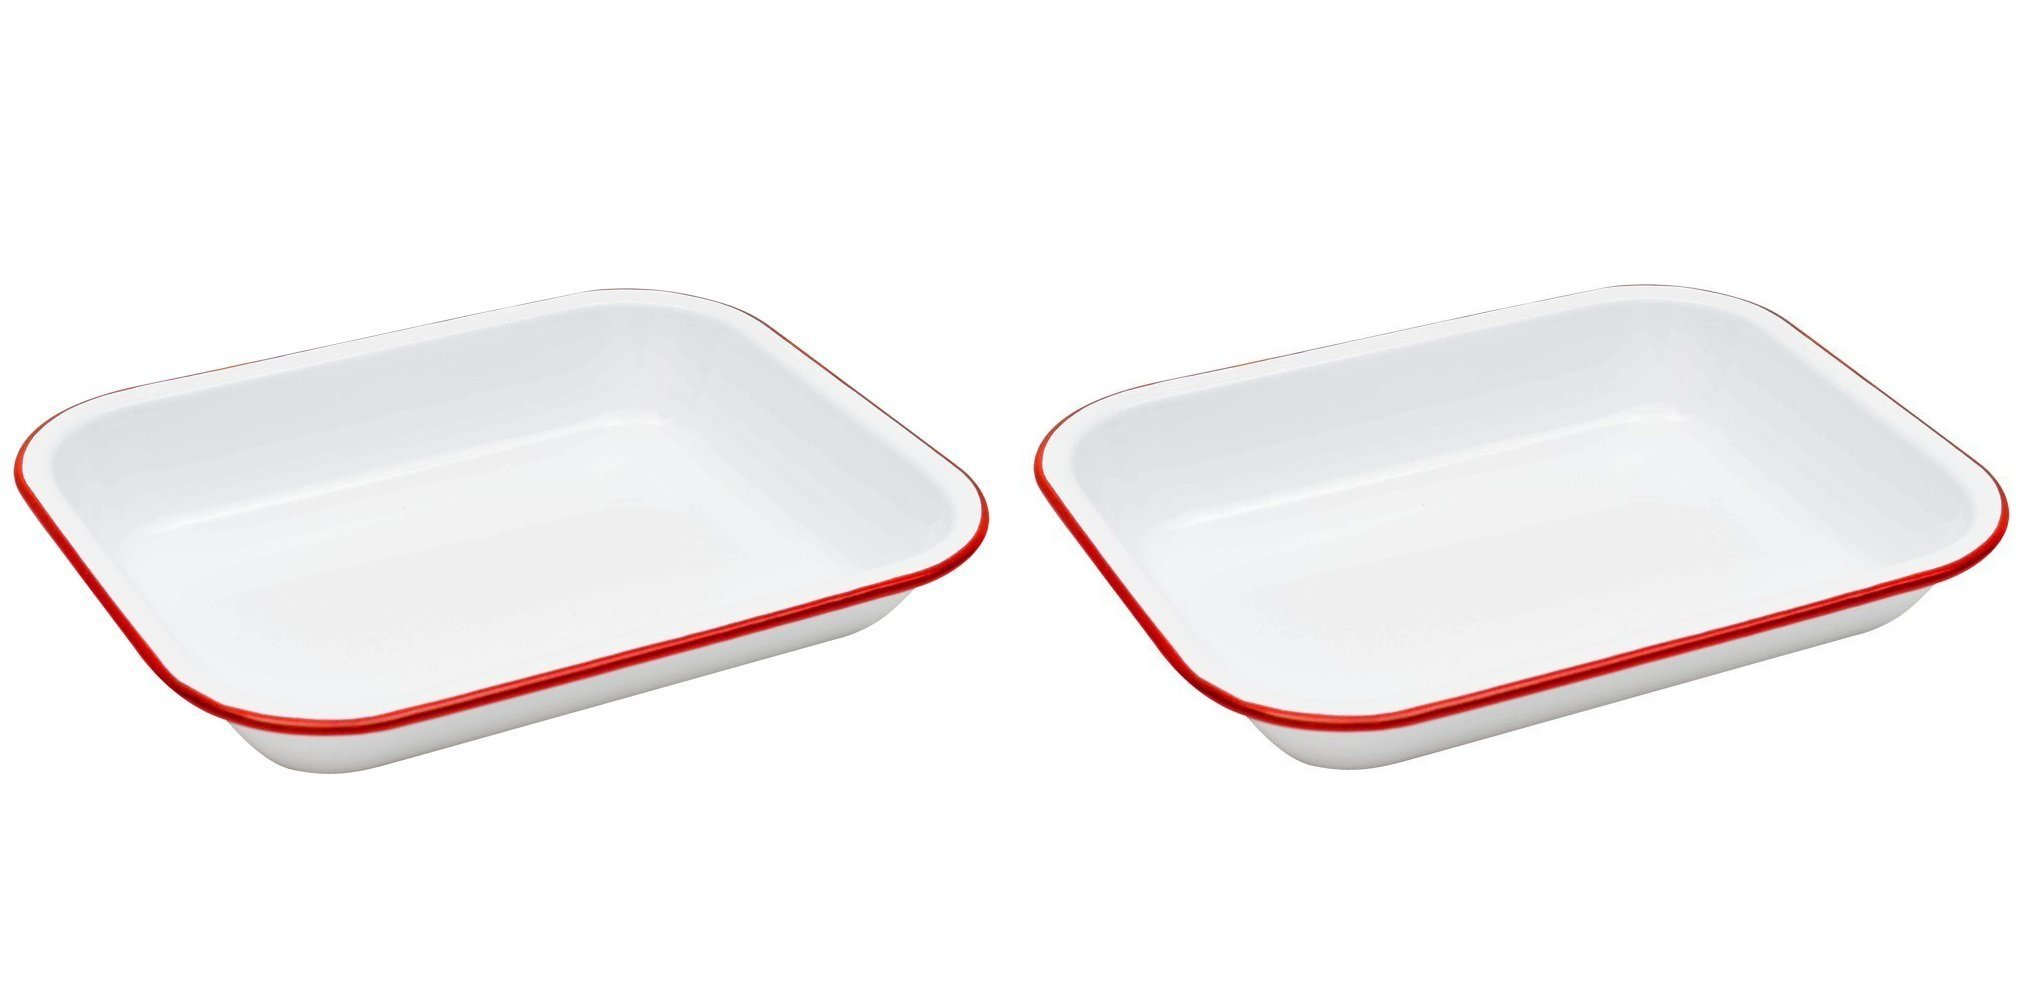 Crow Canyon Enamelware Small Roasting Pan - Solid White with Red Rim Set of 2 11.3 Inches Long By 1.55 Inches Tall By 9.1 Inches Wide